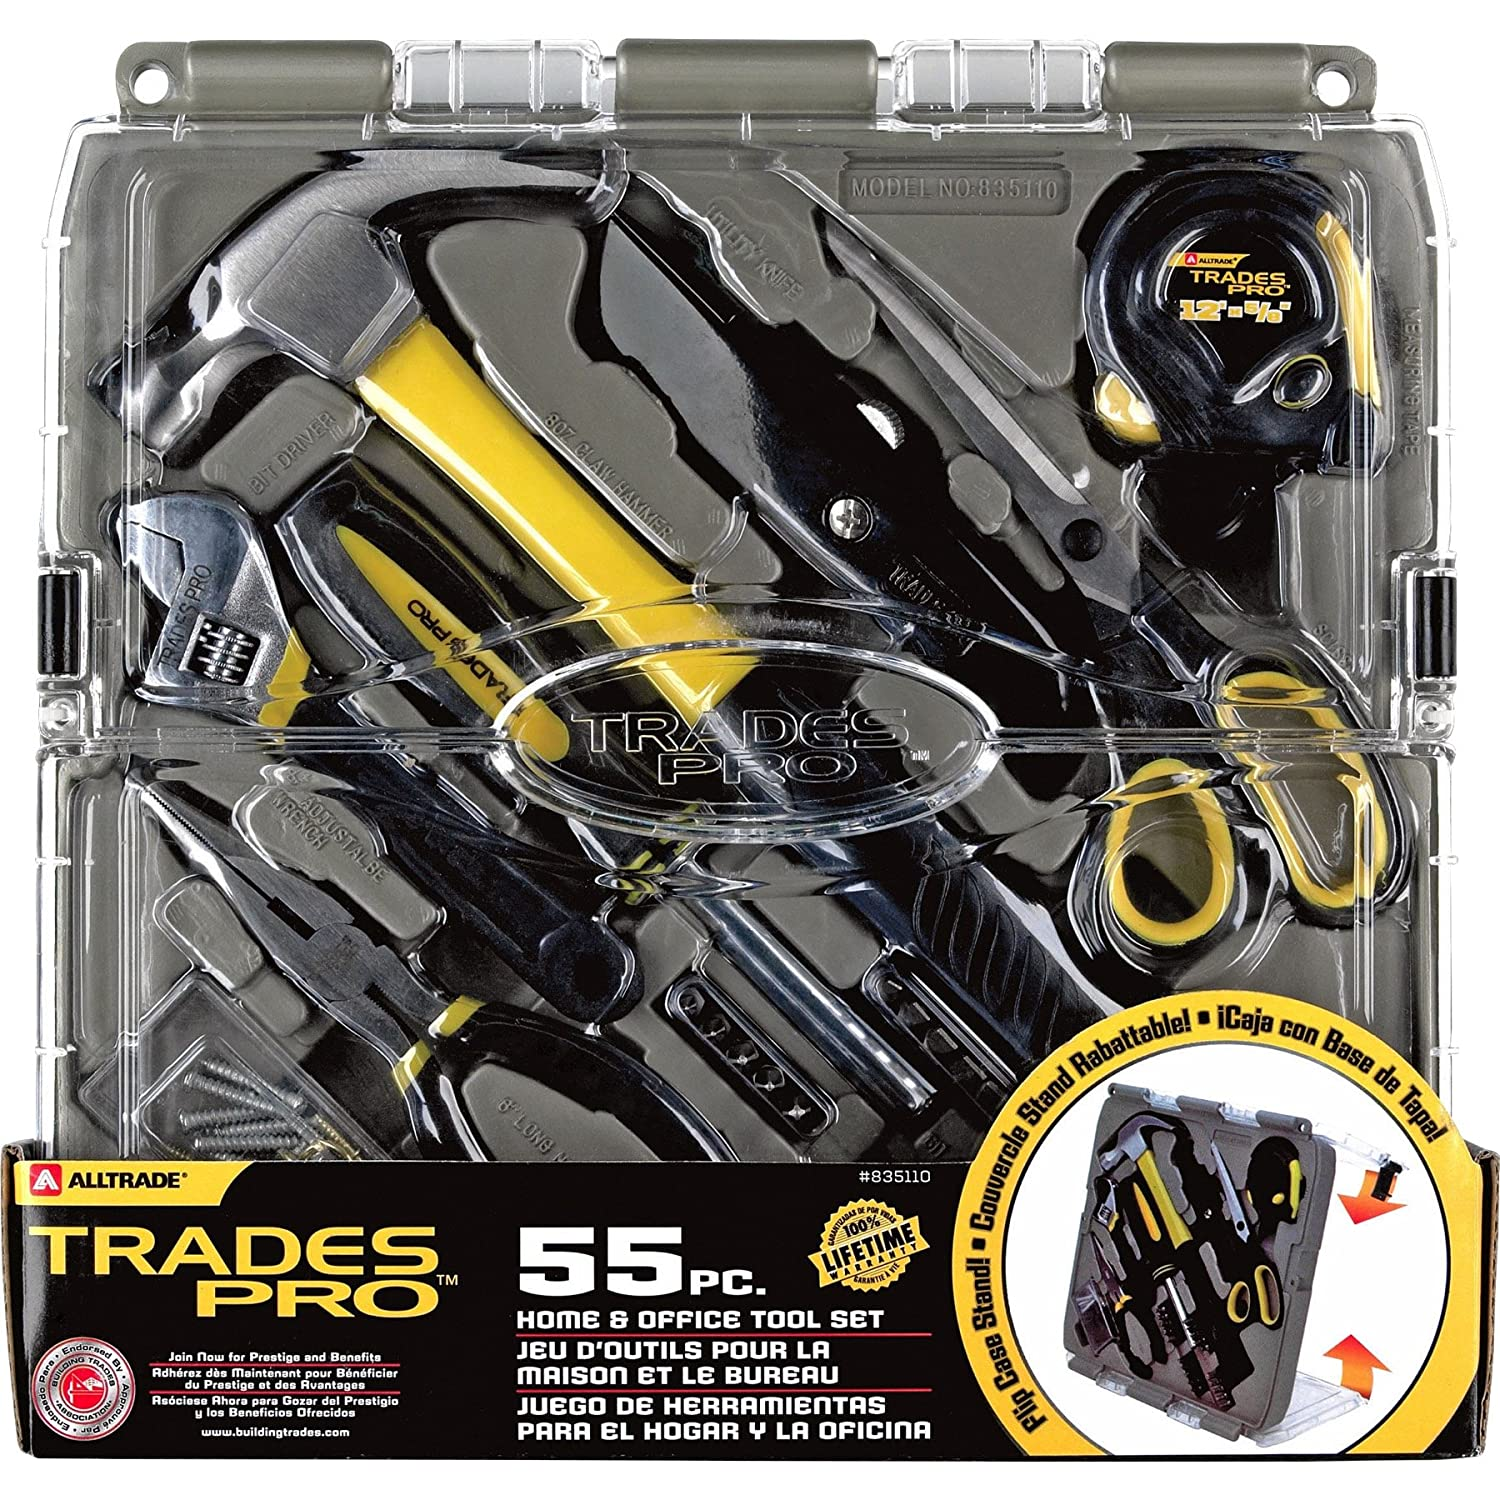 Tradespro 835110 Home And Office Tool Set, 55-Piece - Hand Tool Sets - Amazon.com